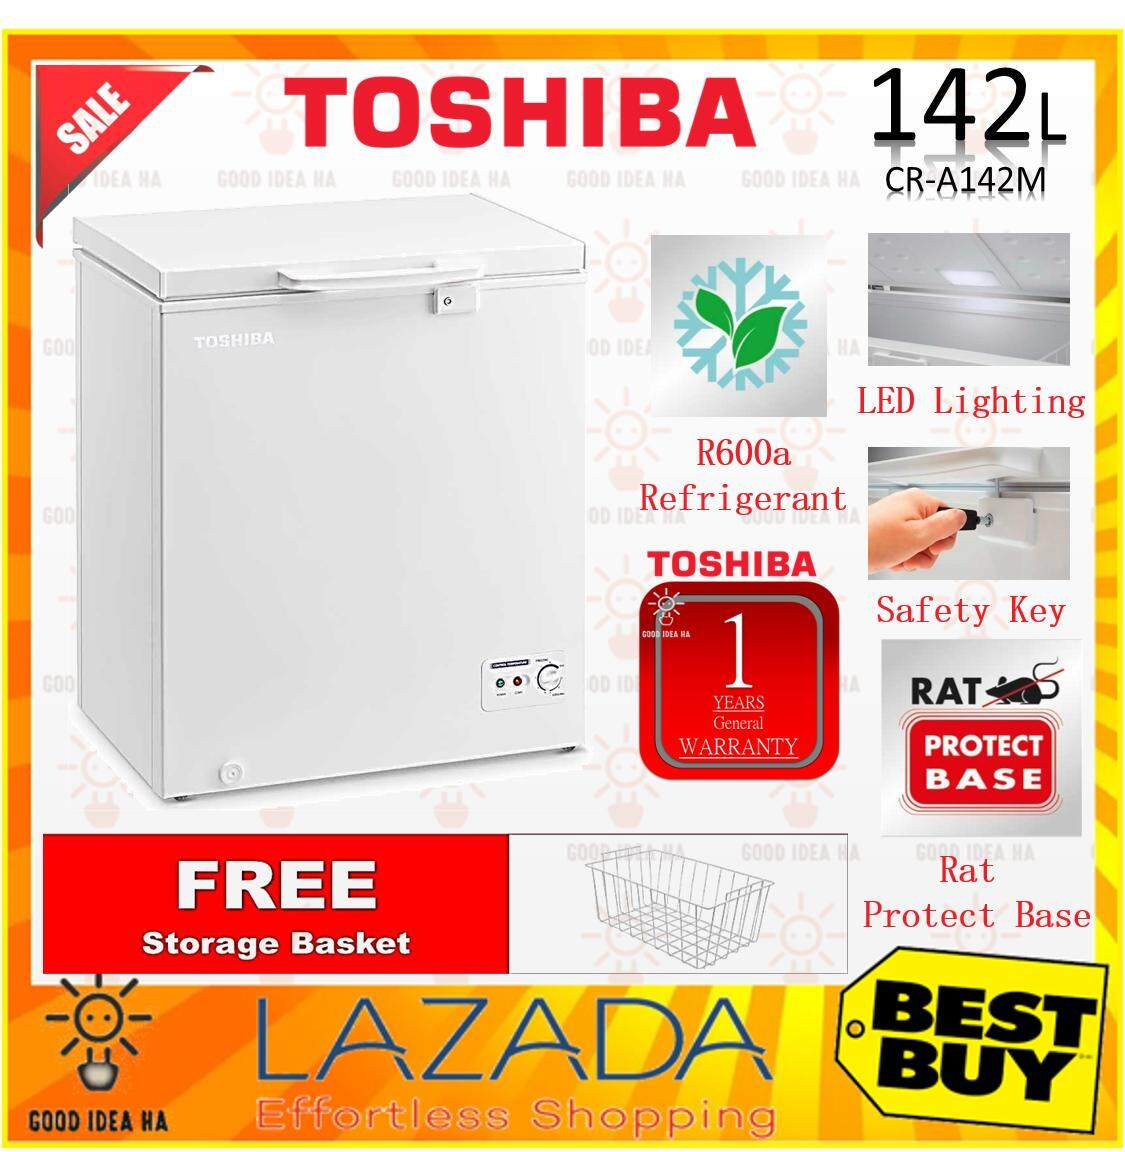 *FREE GIFT* TOSHIBA 142L CHEST FREEZER (CR-A142M / CRA142M) with 2 IN 1 FUNCTION